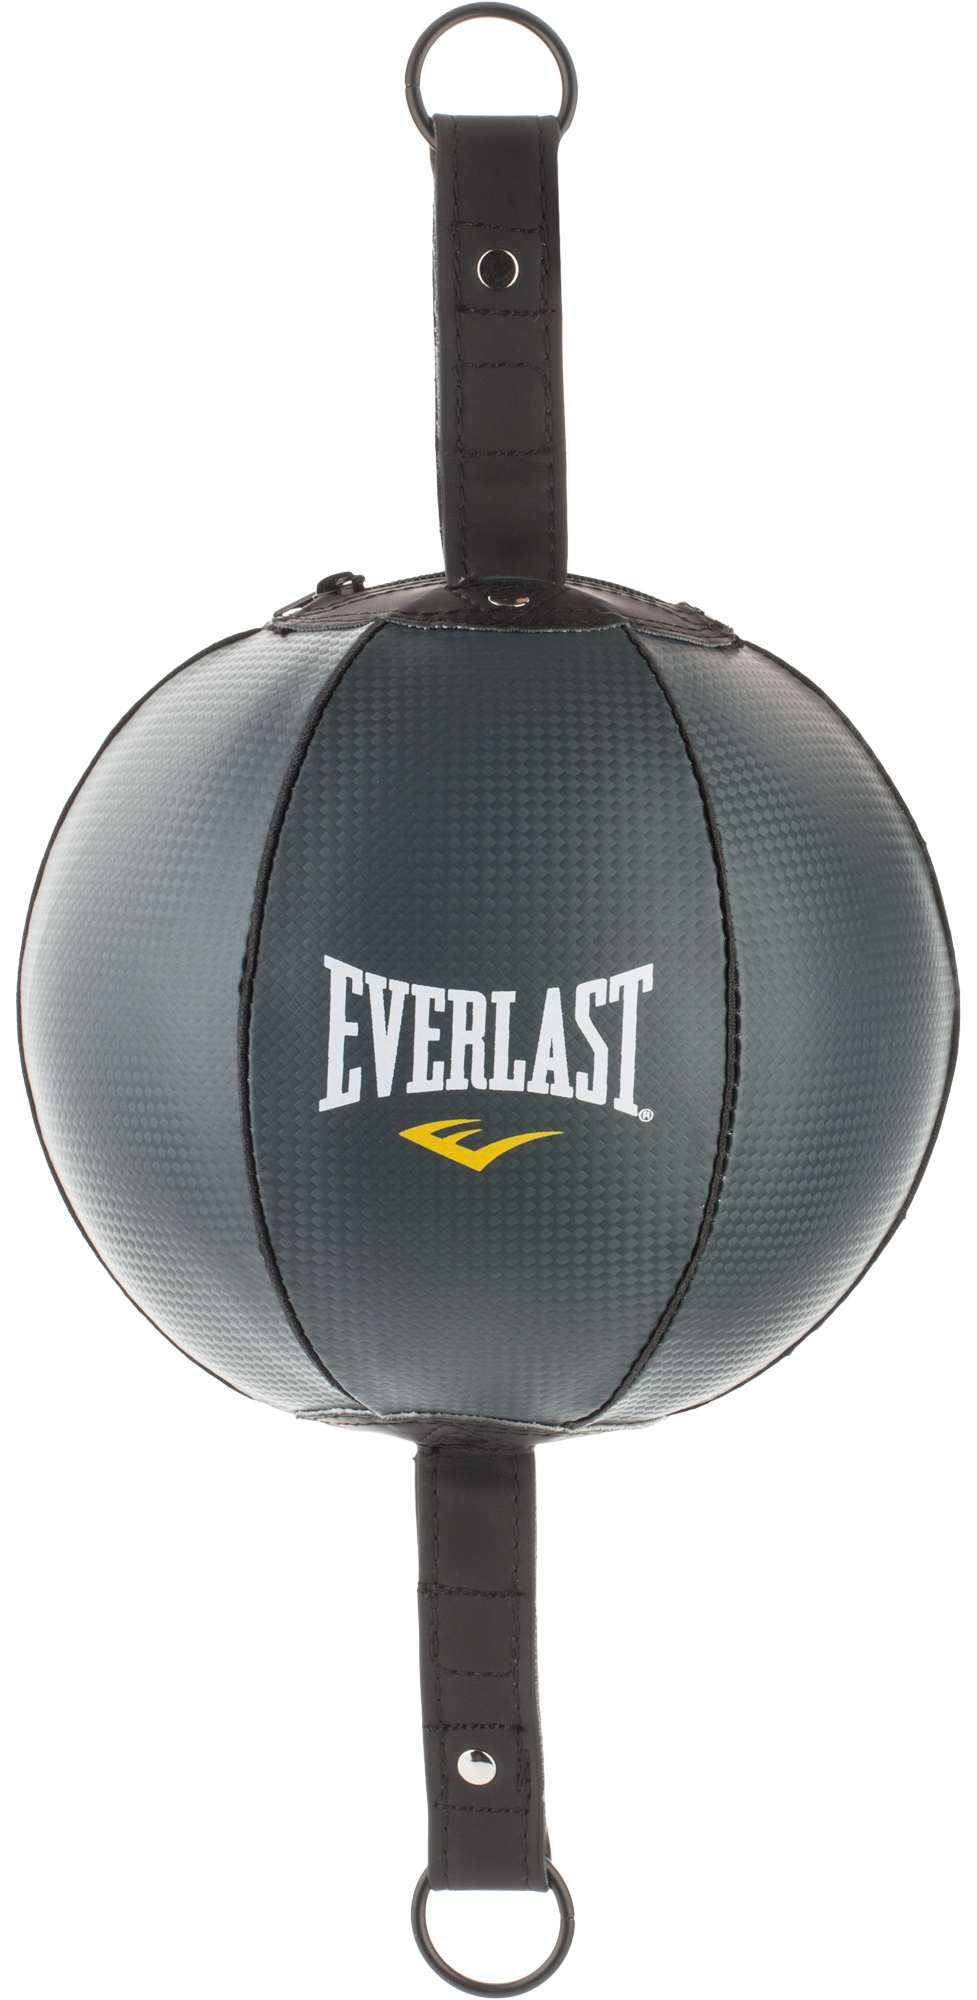 Everlast Груша пневматическая Everlast PU Double End 20 everlast олимпийка